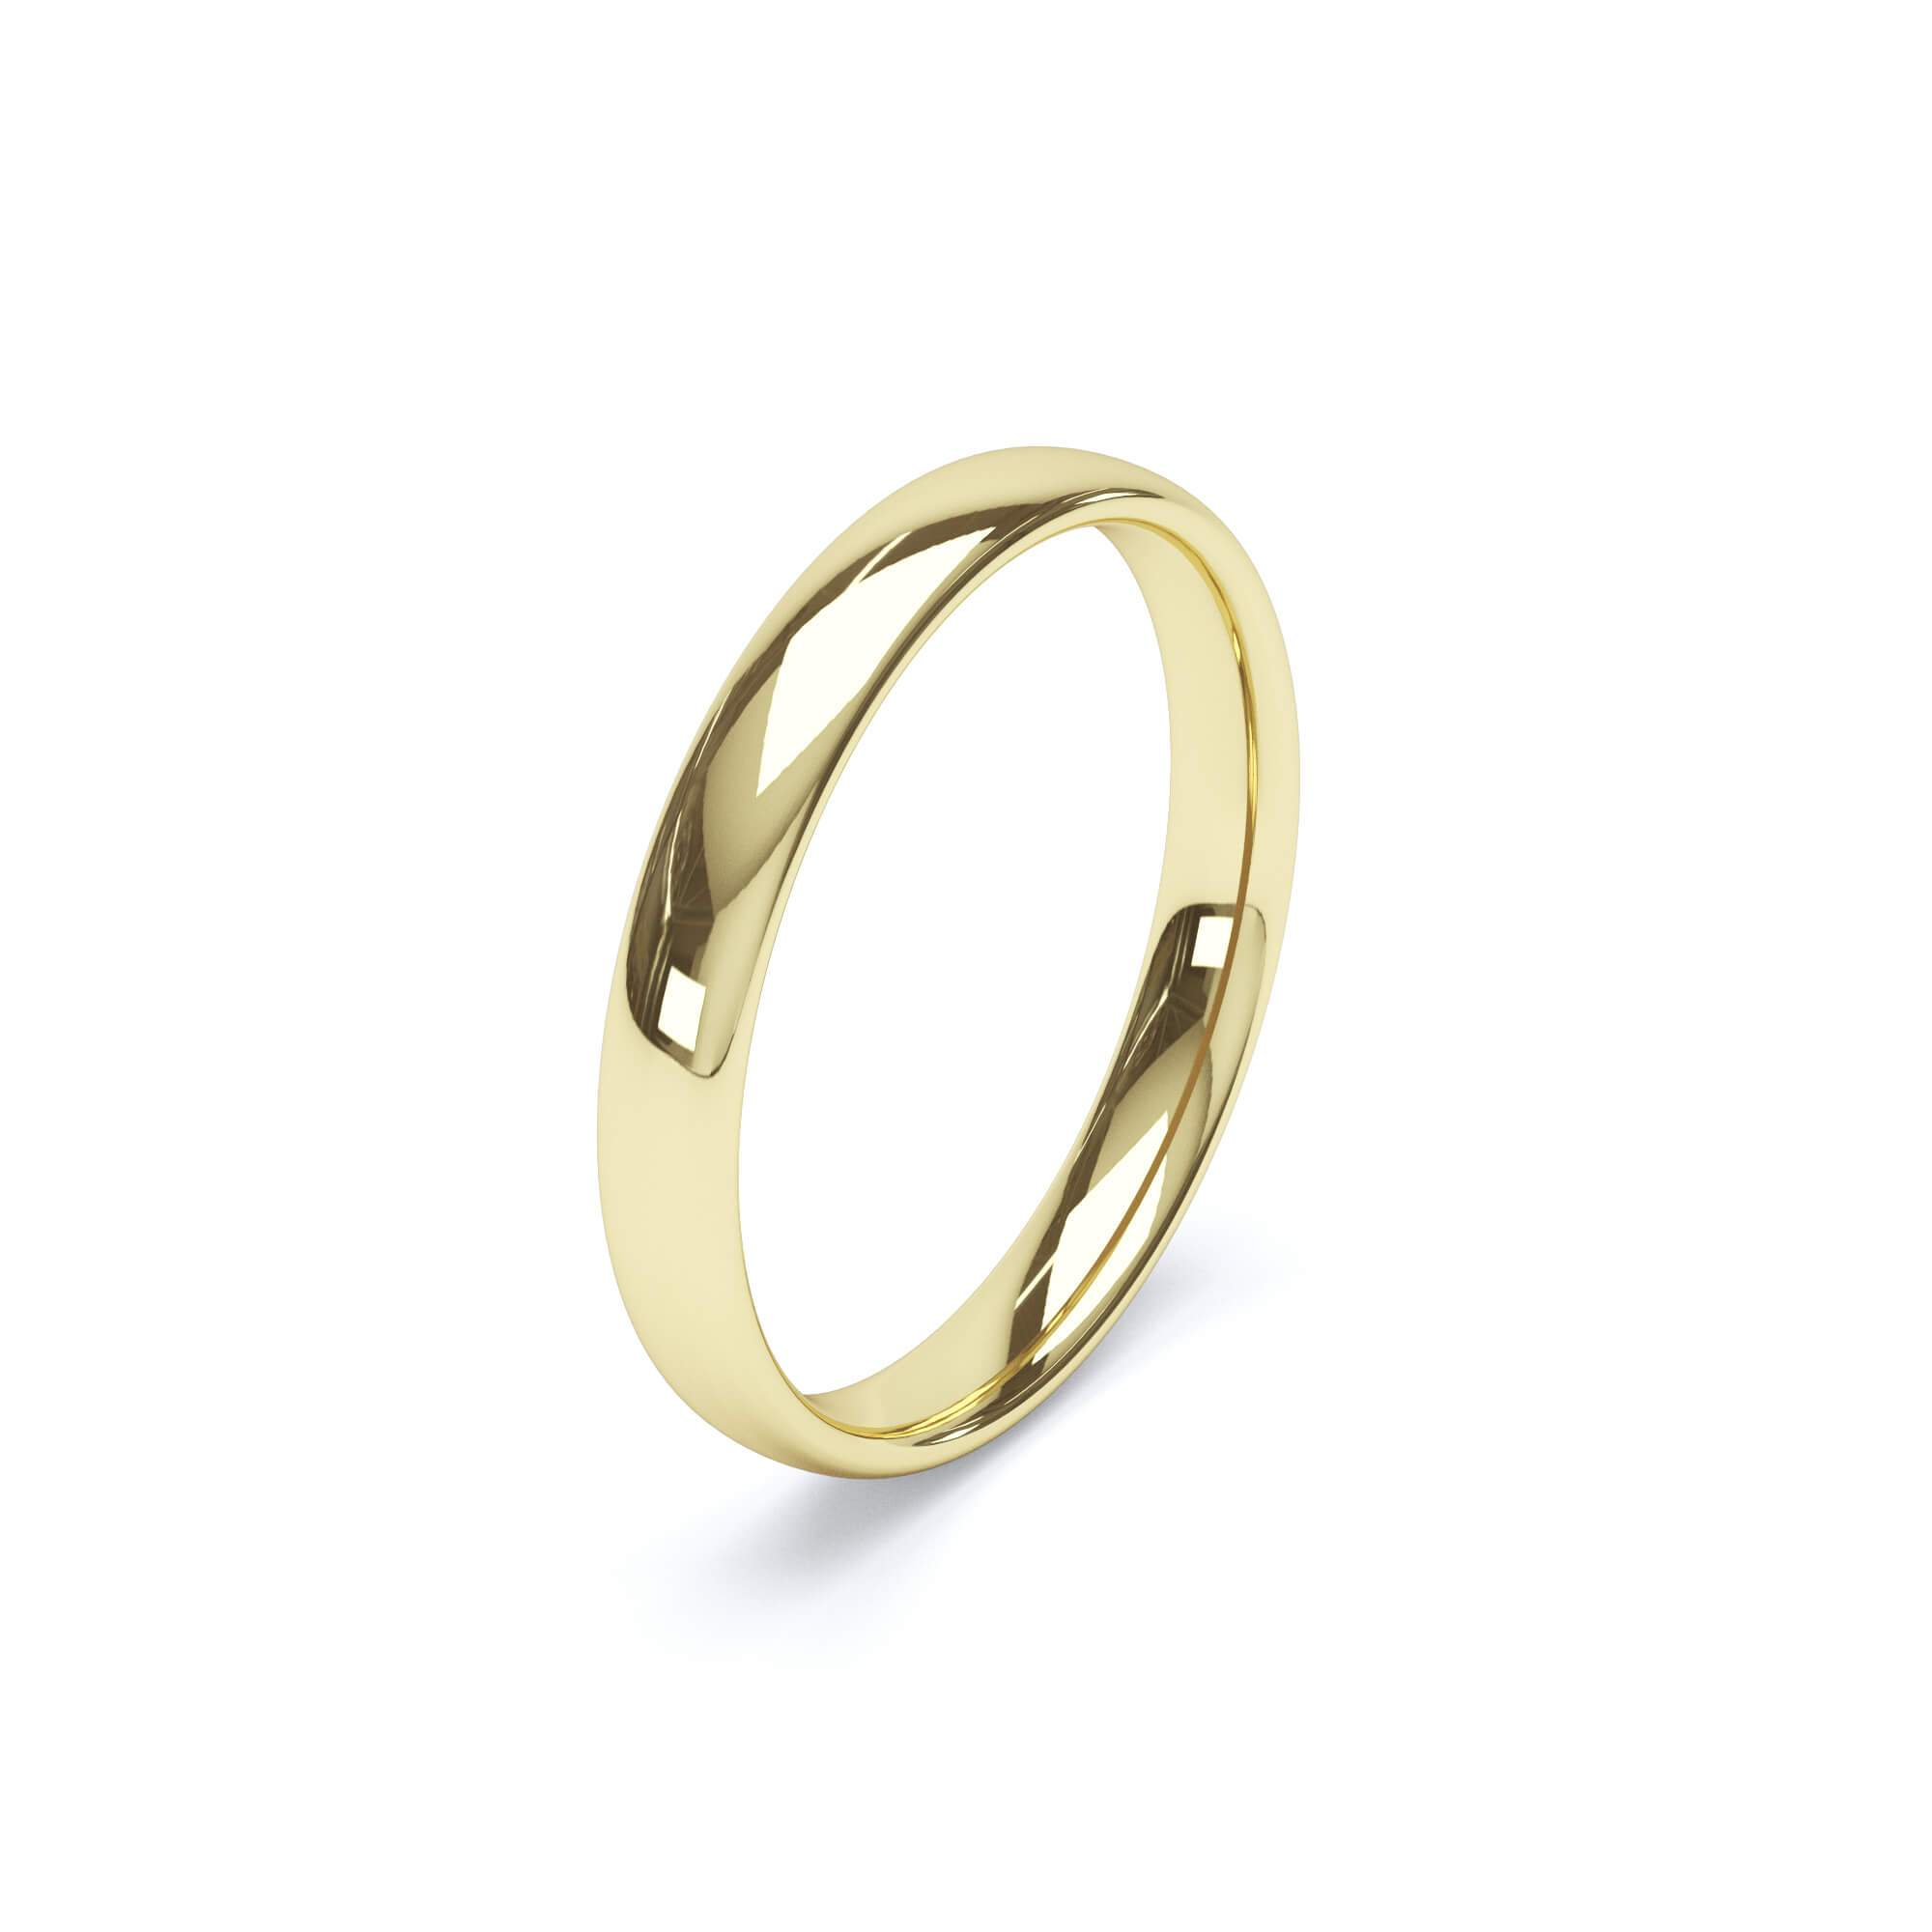 Women's Plain Wedding Band Regular Court Profile 18k Yellow Gold Wedding Bands Lily Arkwright